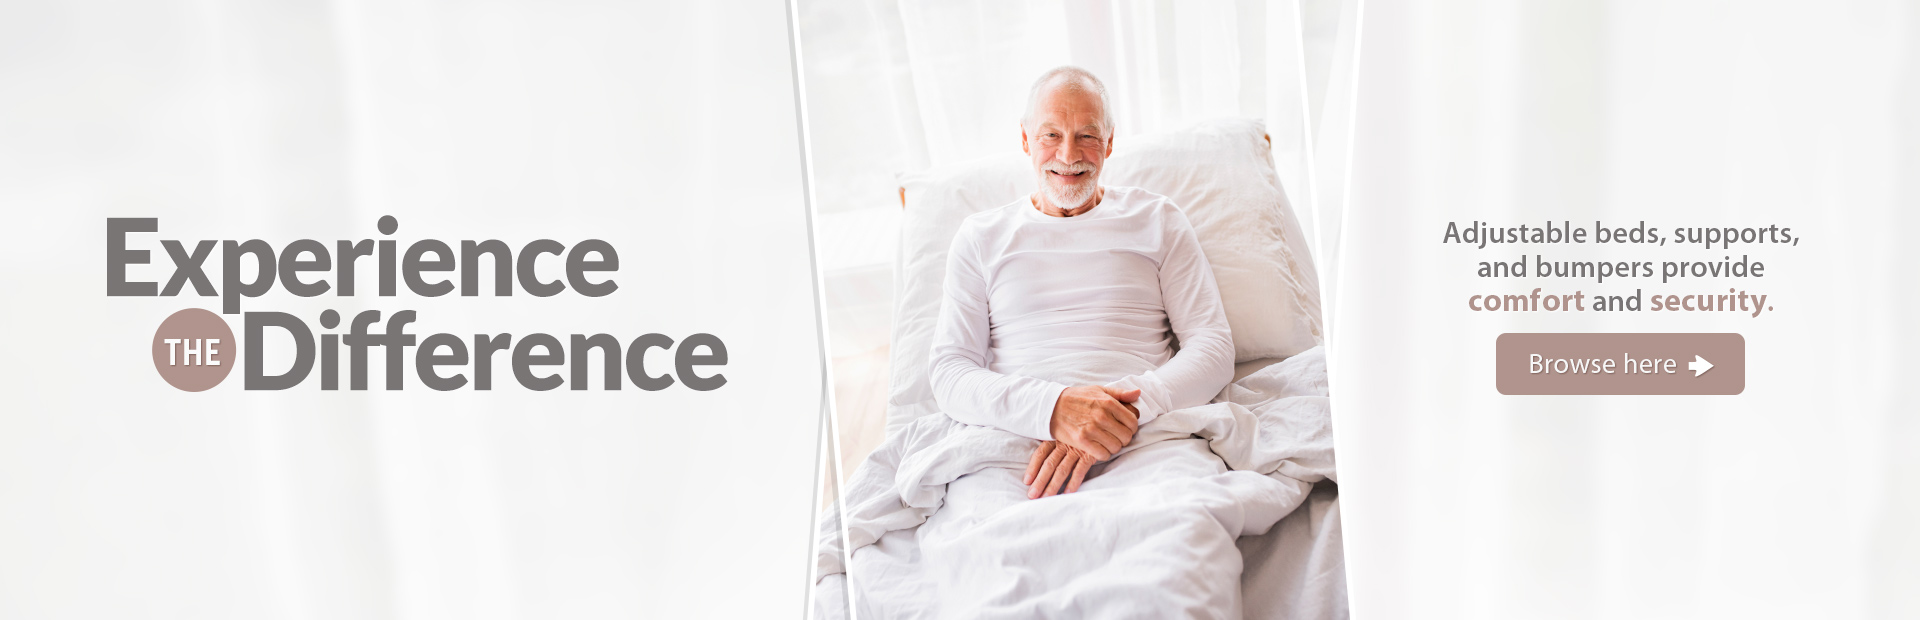 Click here to browse adjustable beds, supports, and bumpers.